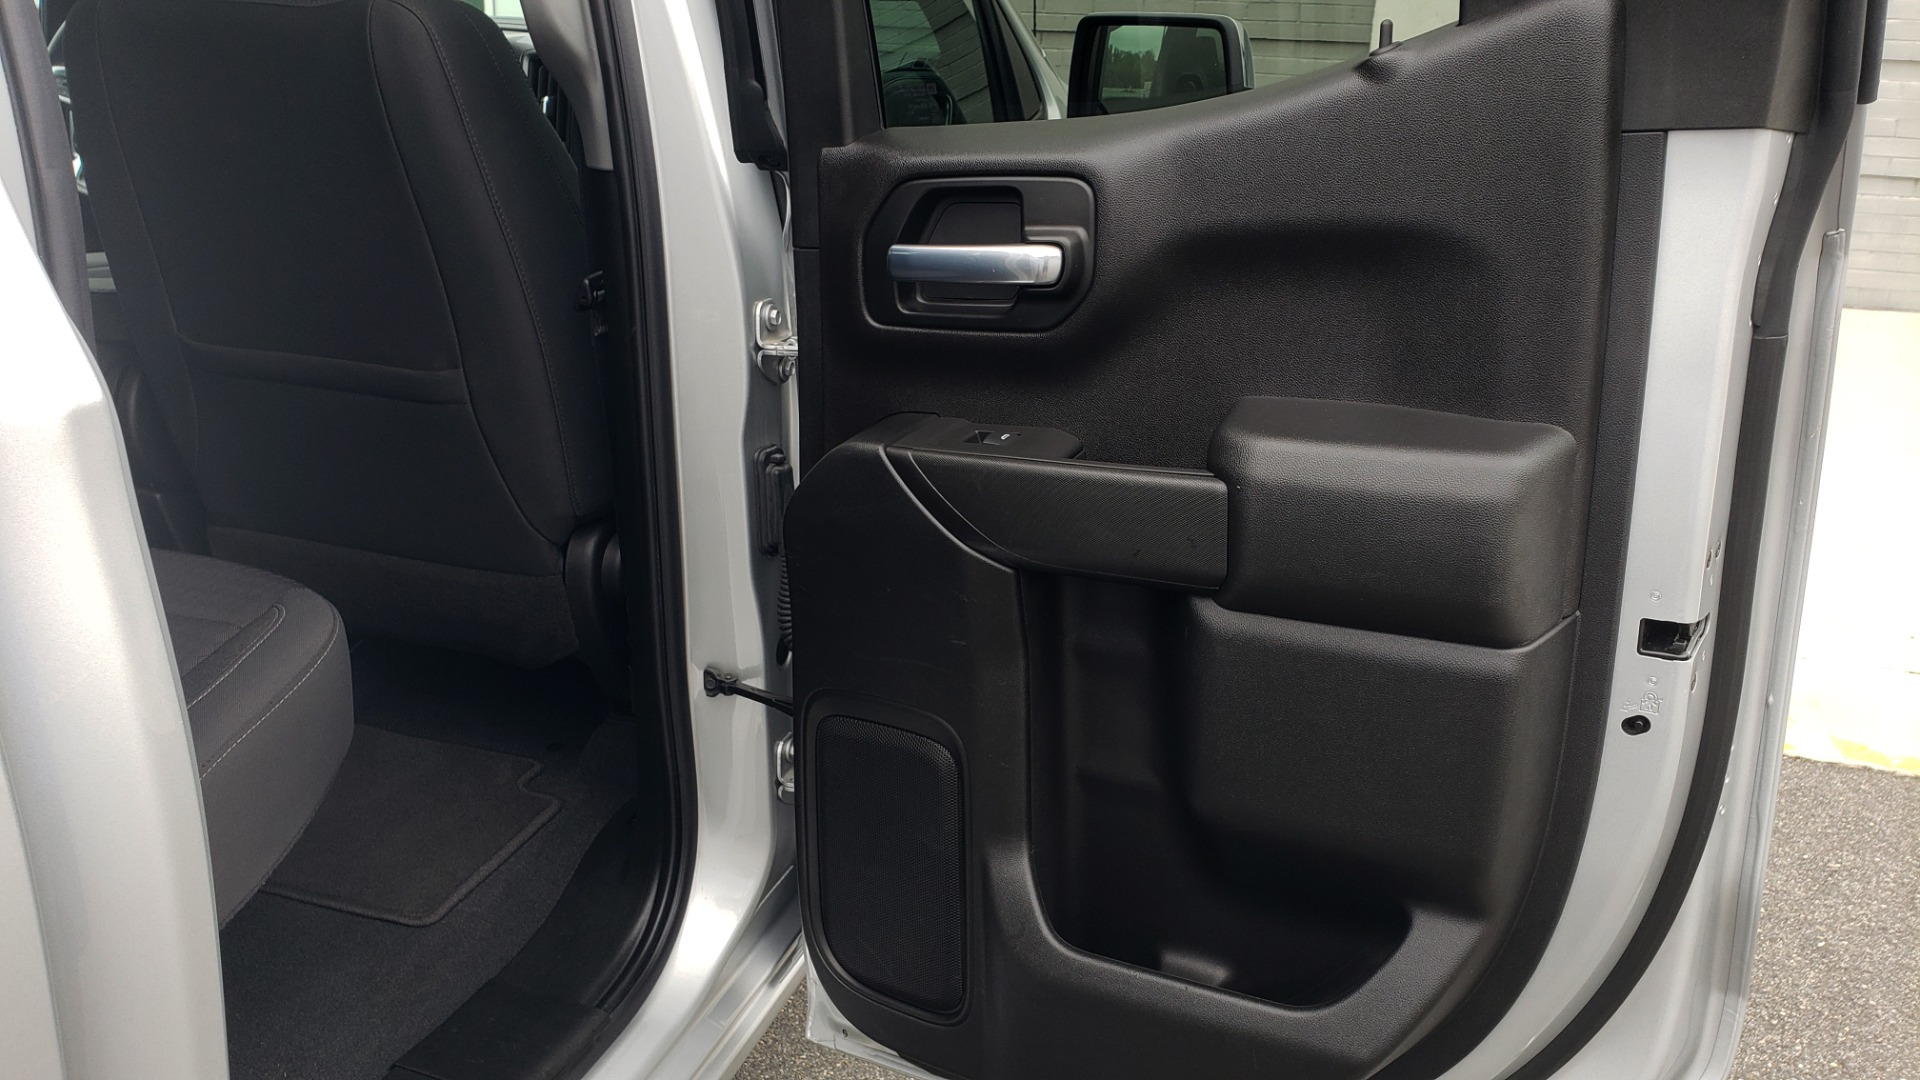 Used 2020 Chevrolet SILVERADO 1500 LT 4WD DOUBLECAB 147 WB / 5.3L V8 / BEDLINER / REARVIEW for sale $41,995 at Formula Imports in Charlotte NC 28227 62